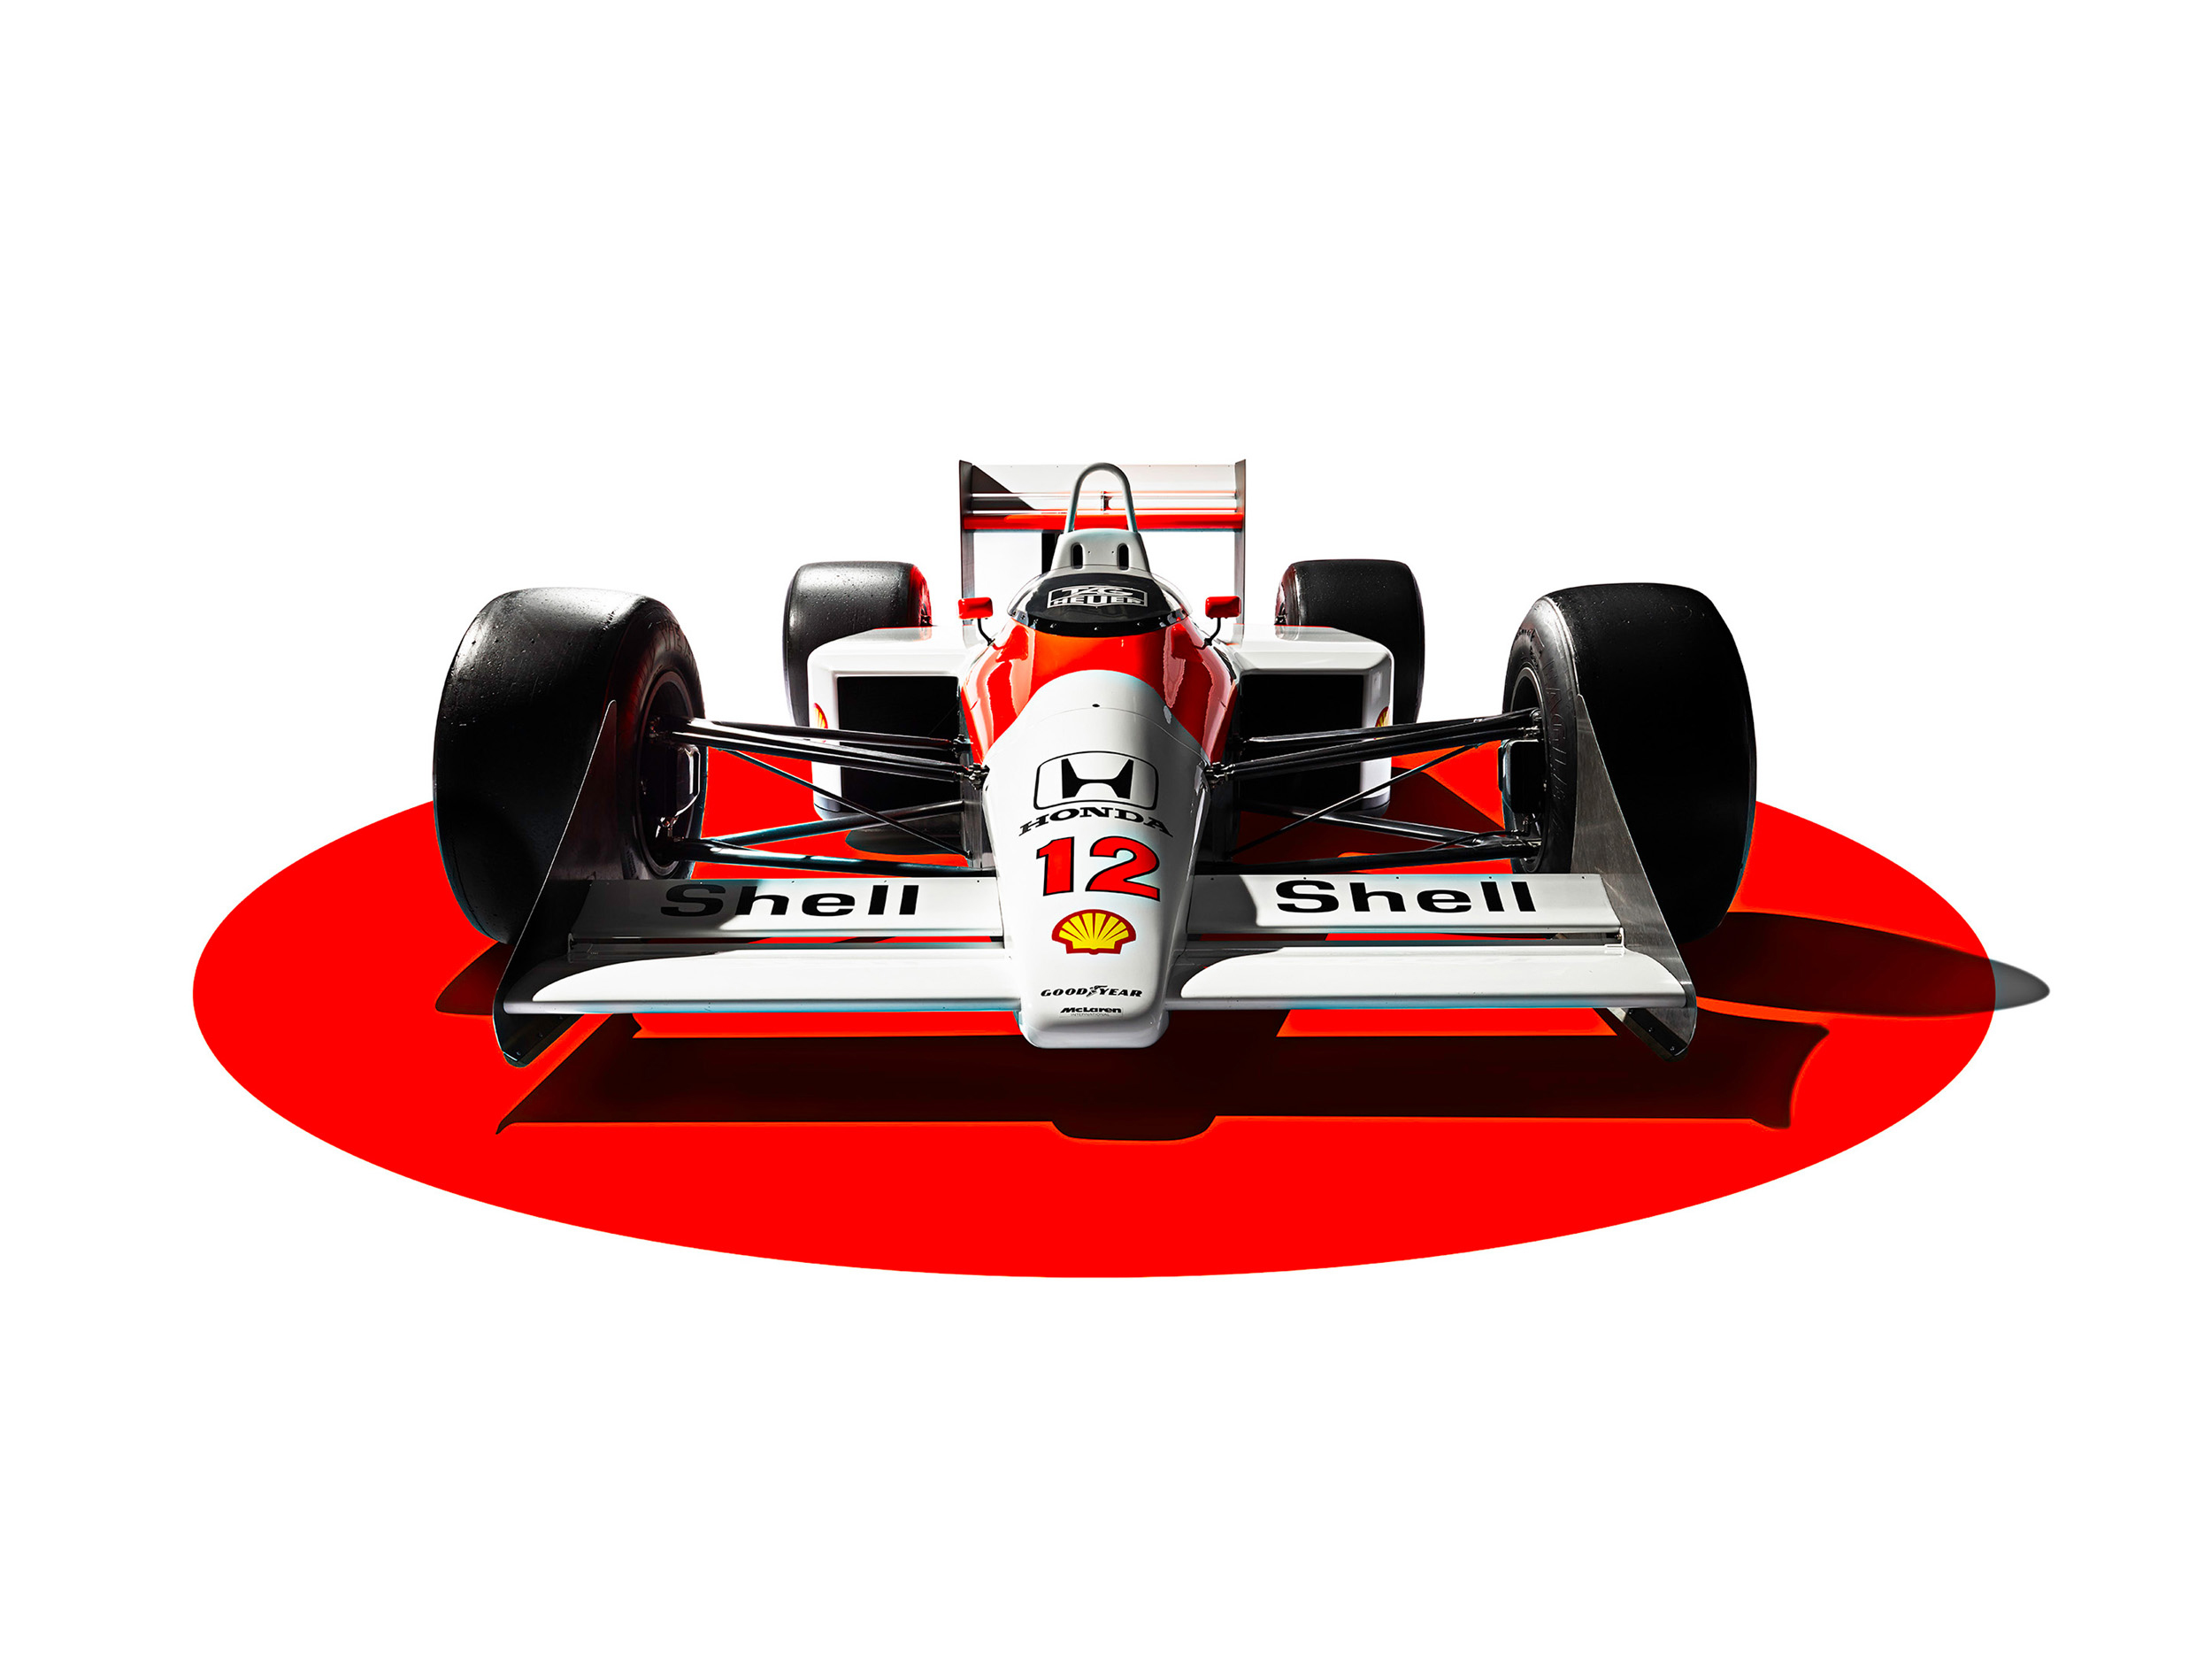 807_WH_McLarenMP44_Front_v2a_2